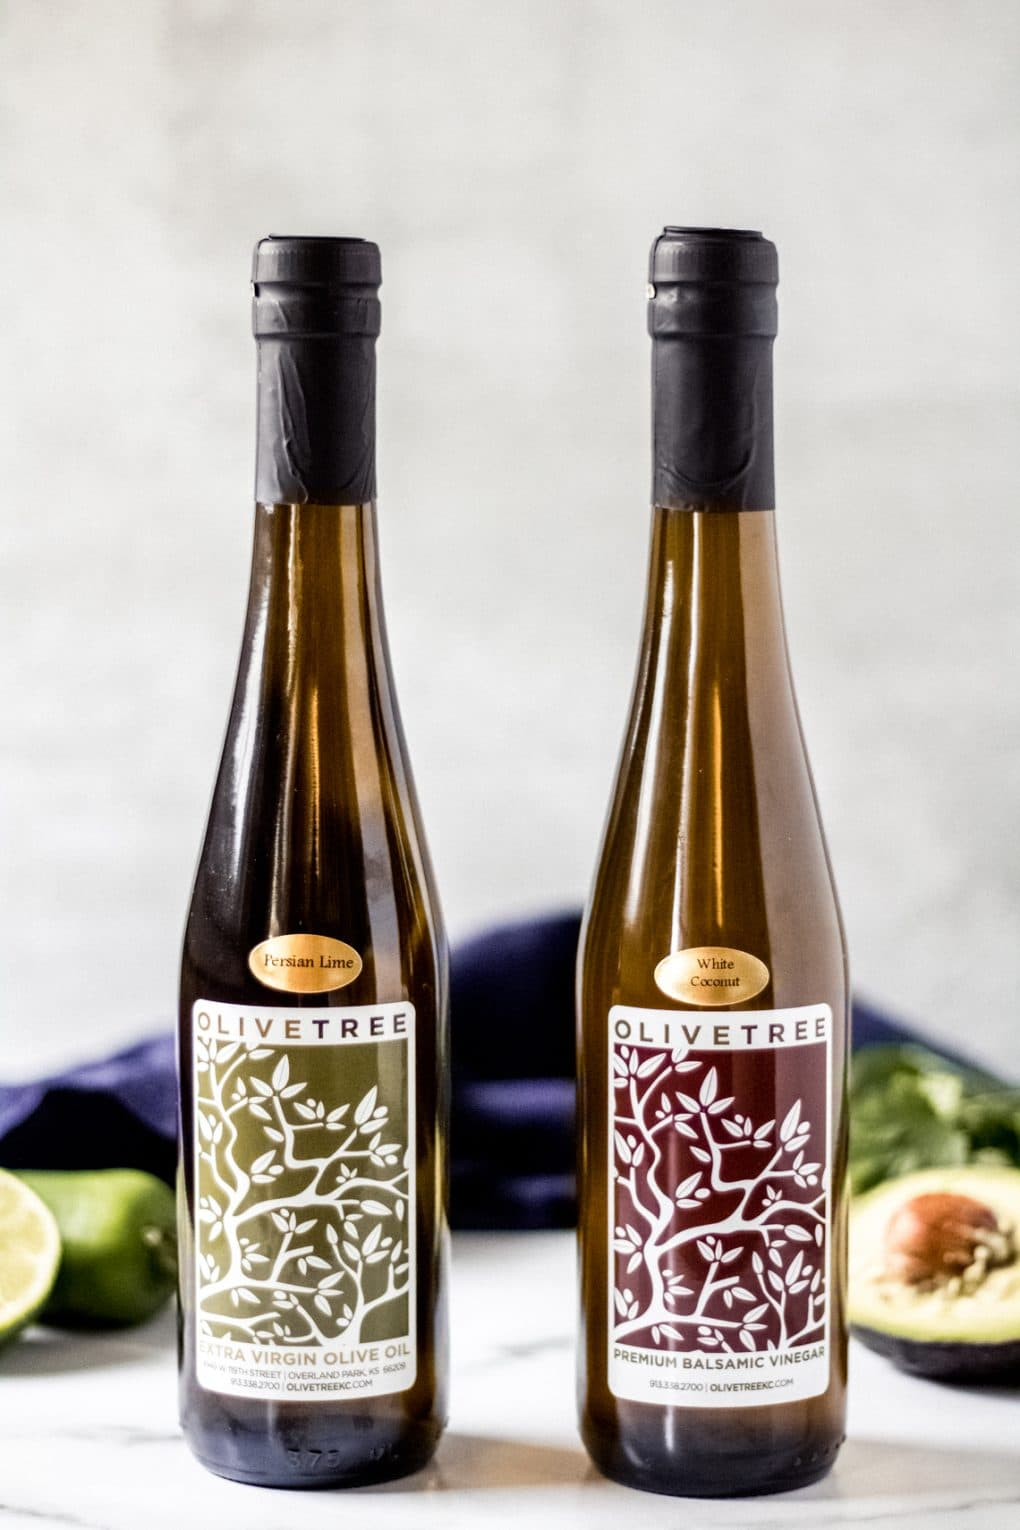 two bottles of olive tree products